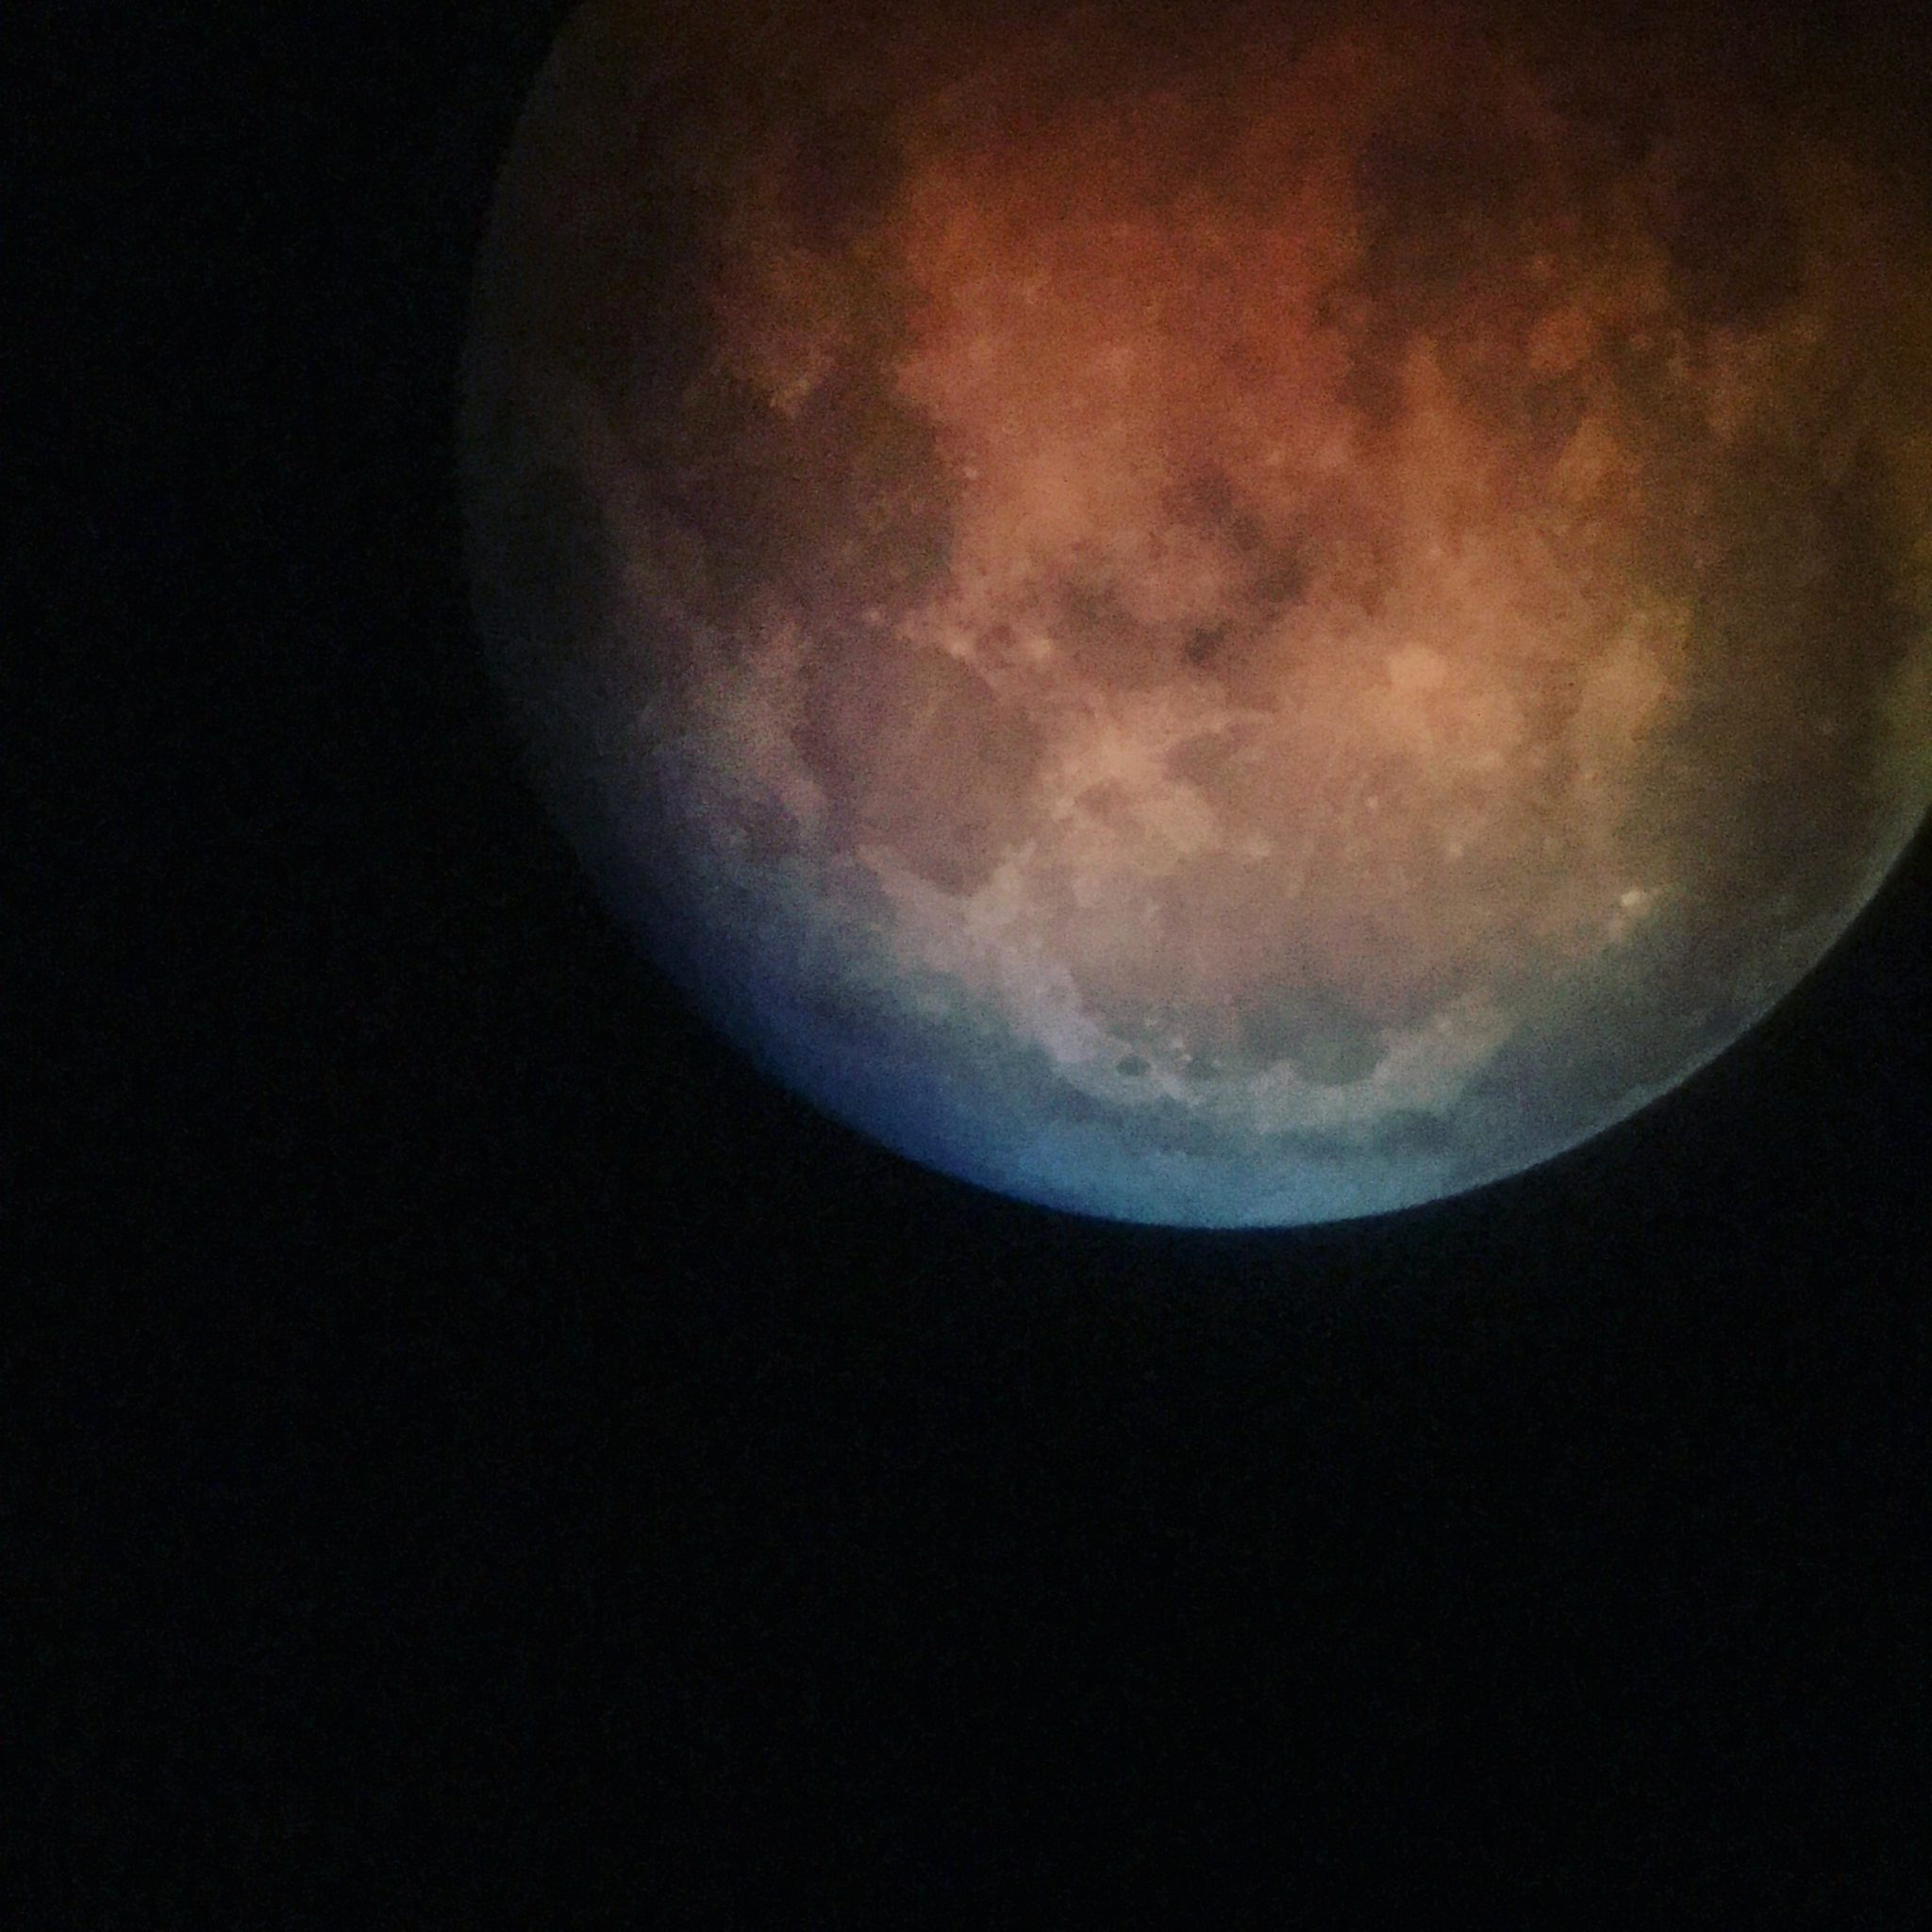 The final minutes of totality of the lunar eclipse, a hint of blue grey comes into view as the ruddy color cast by Earth's shadow fades.